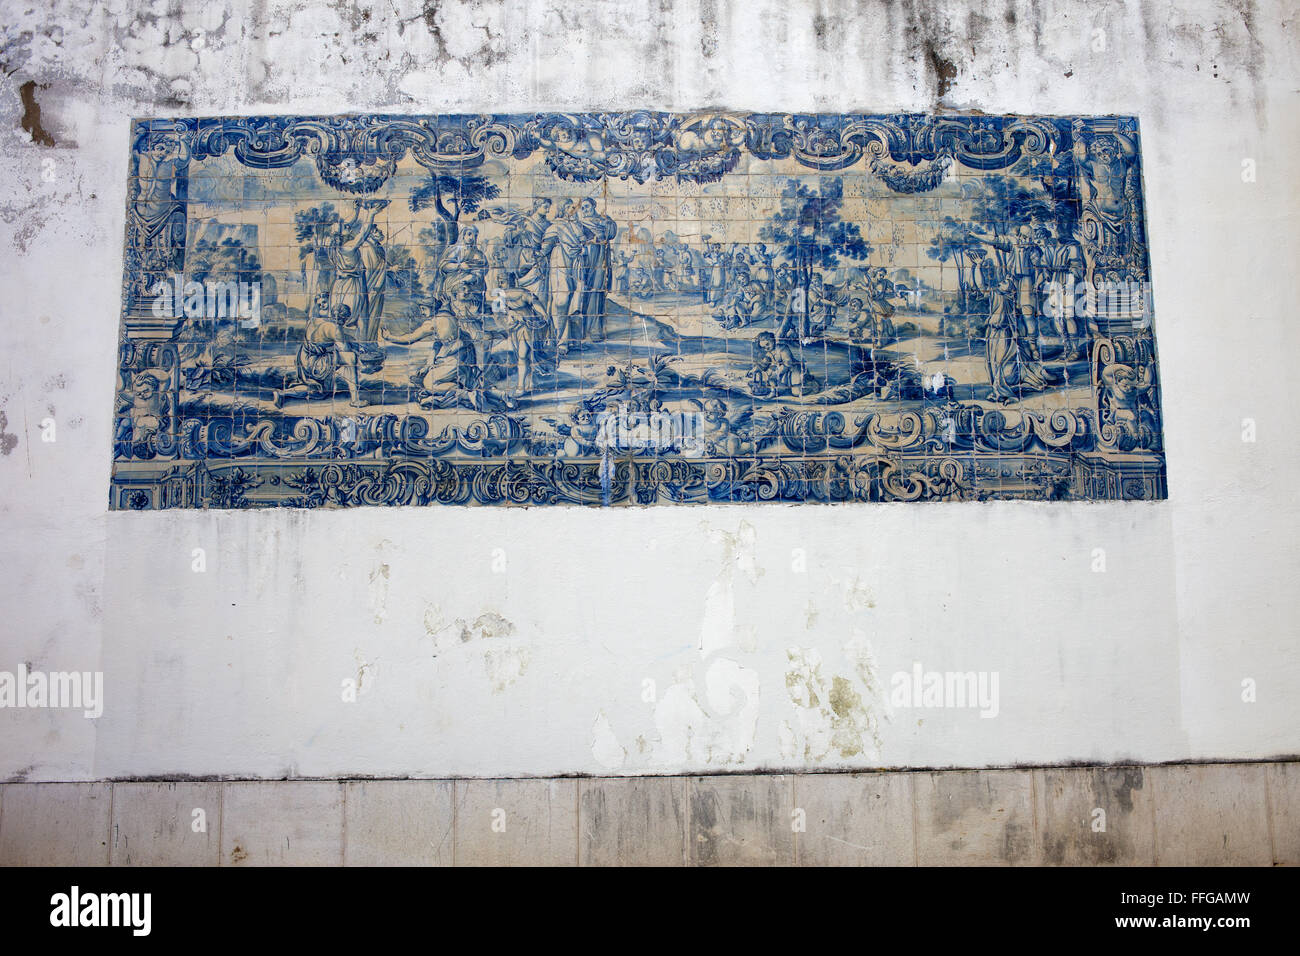 Azulejo tiles on Agues Livres Aqueduct wall in Lisbon, Portugal - Stock Image